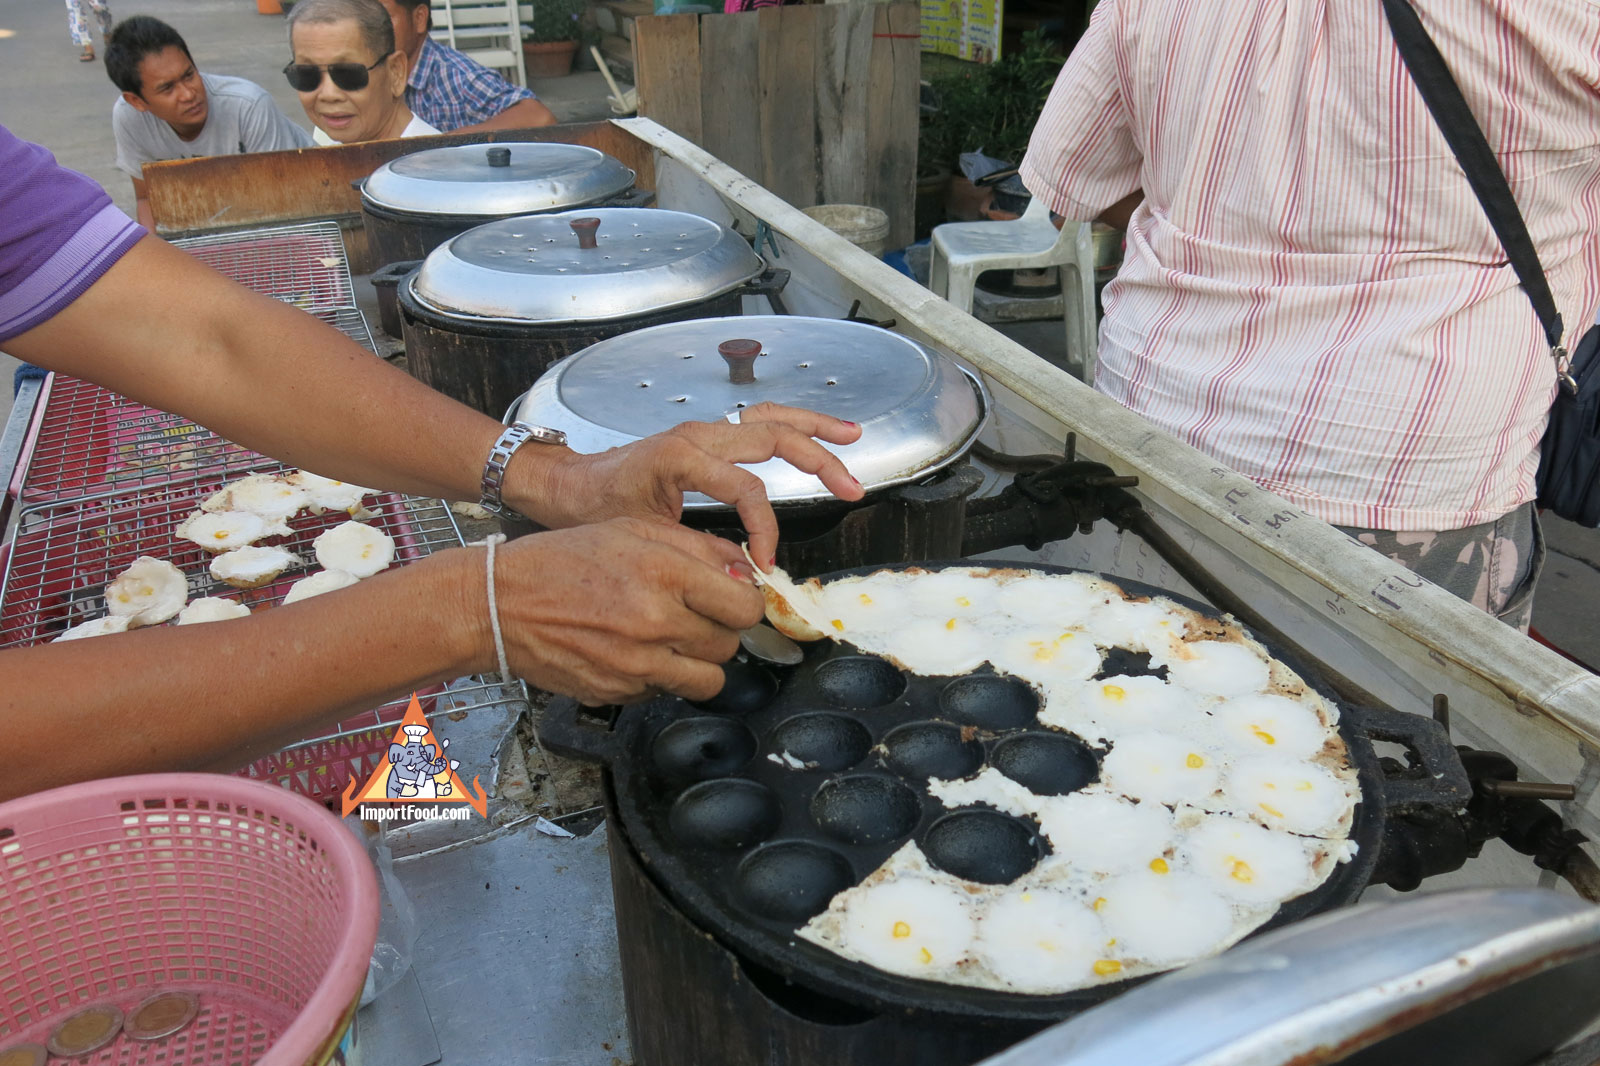 Thai Street Vendor for Thai Coconut Pudding, 'Khanom Krok'